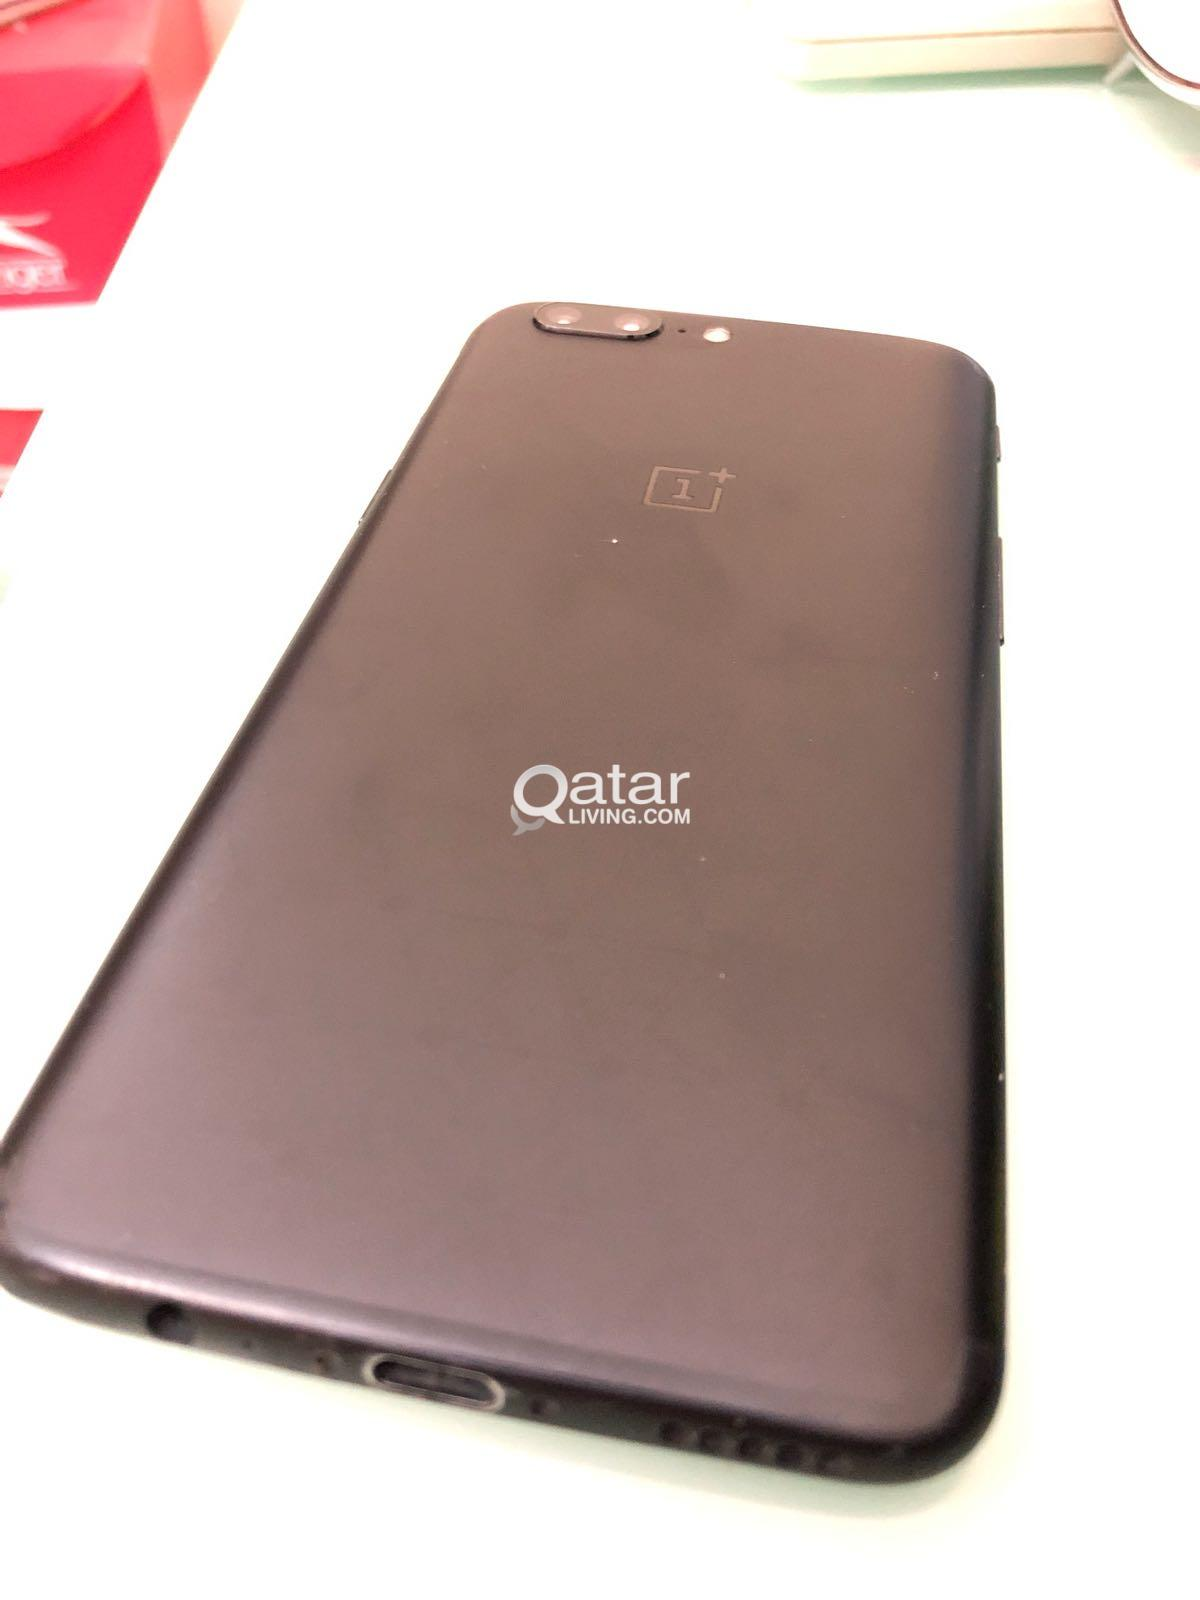 Oneplus 5 128gb Android 8 Boxed With Cover Qatar Living Oneplus5